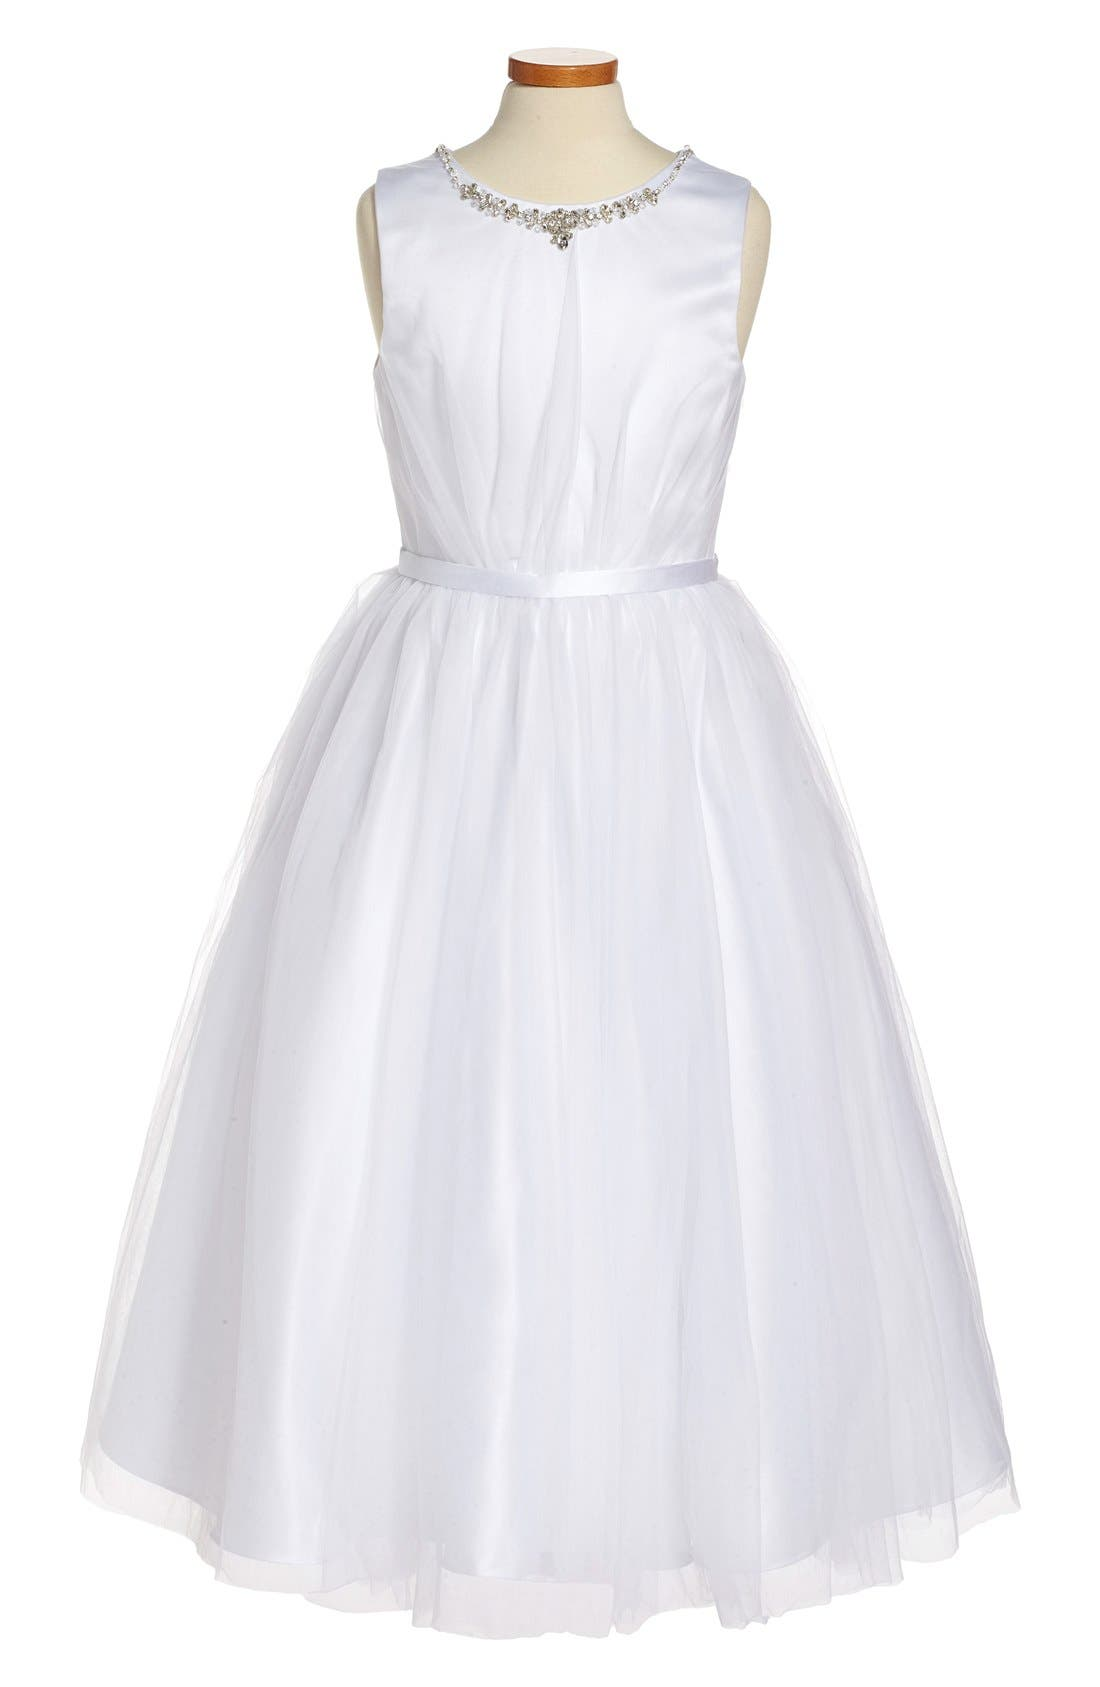 Joan Calabrese for Mon Cheri Beaded Satin & Tulle First Communion Dress (Little Girls & Big Girls)